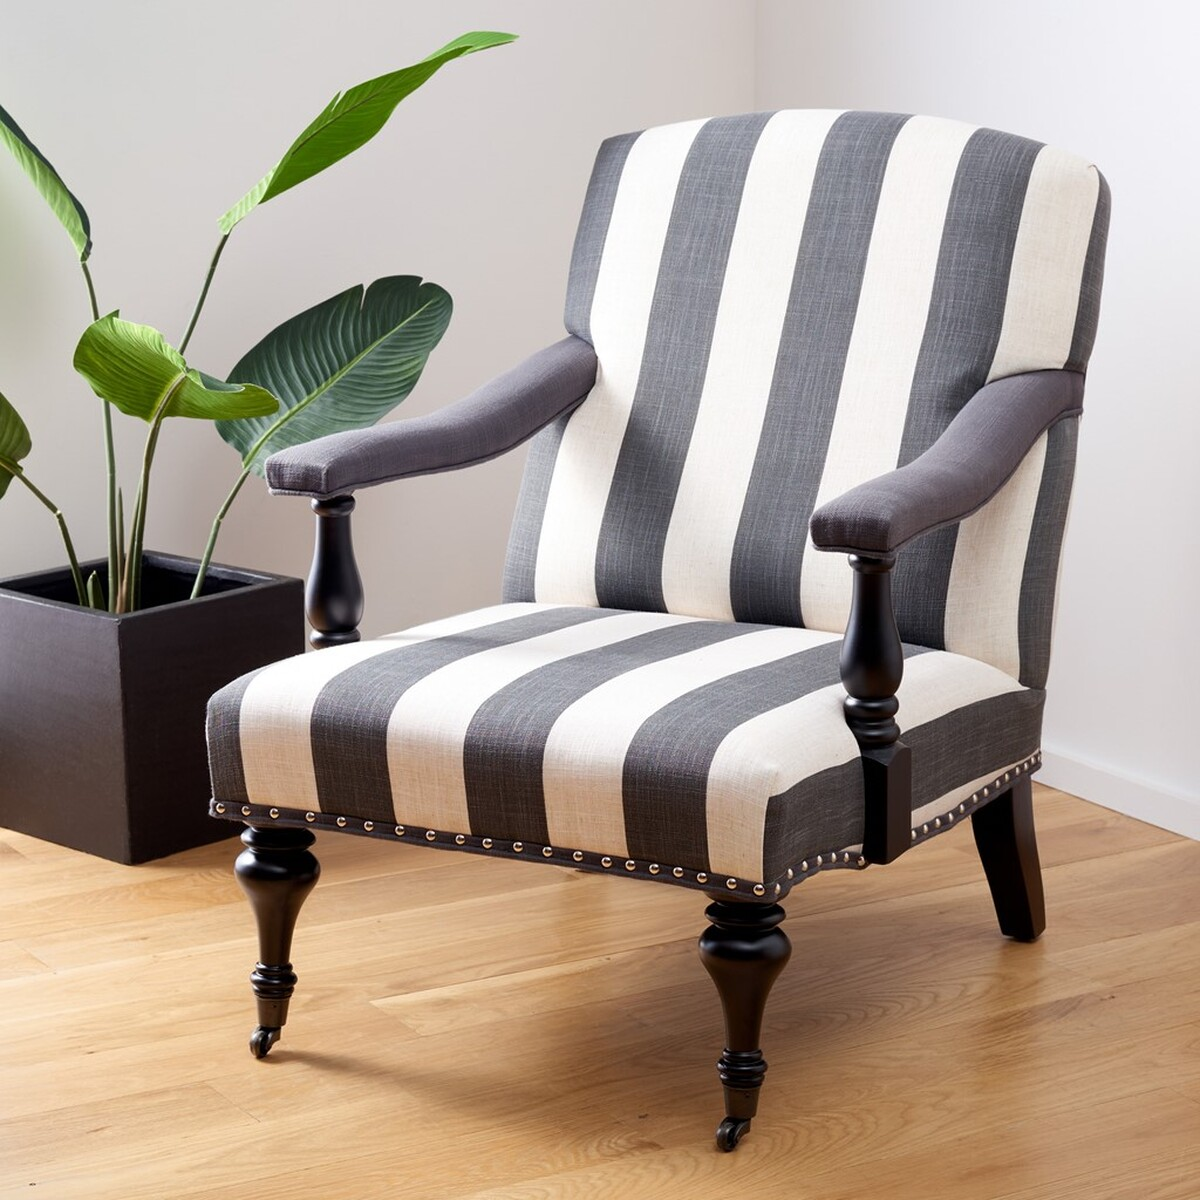 Black And White Striped Chair Mcr4731d Accent Chairs Furniture By Safavieh